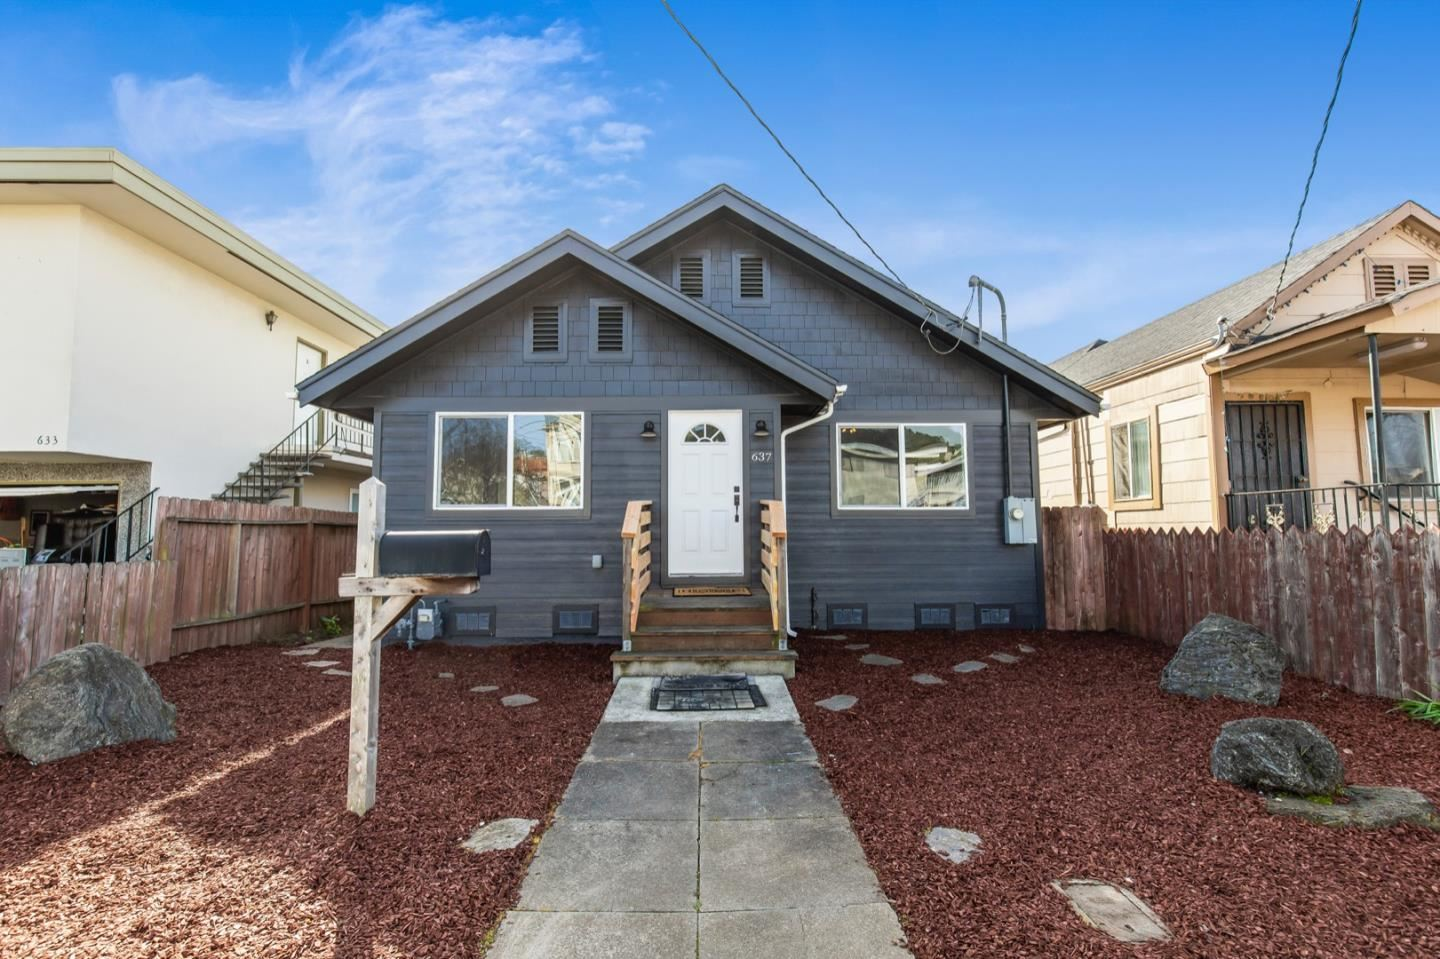 Photo for 637 Grand AVE, SOUTH SAN FRANCISCO, CA 94080 (MLS # ML81781019)